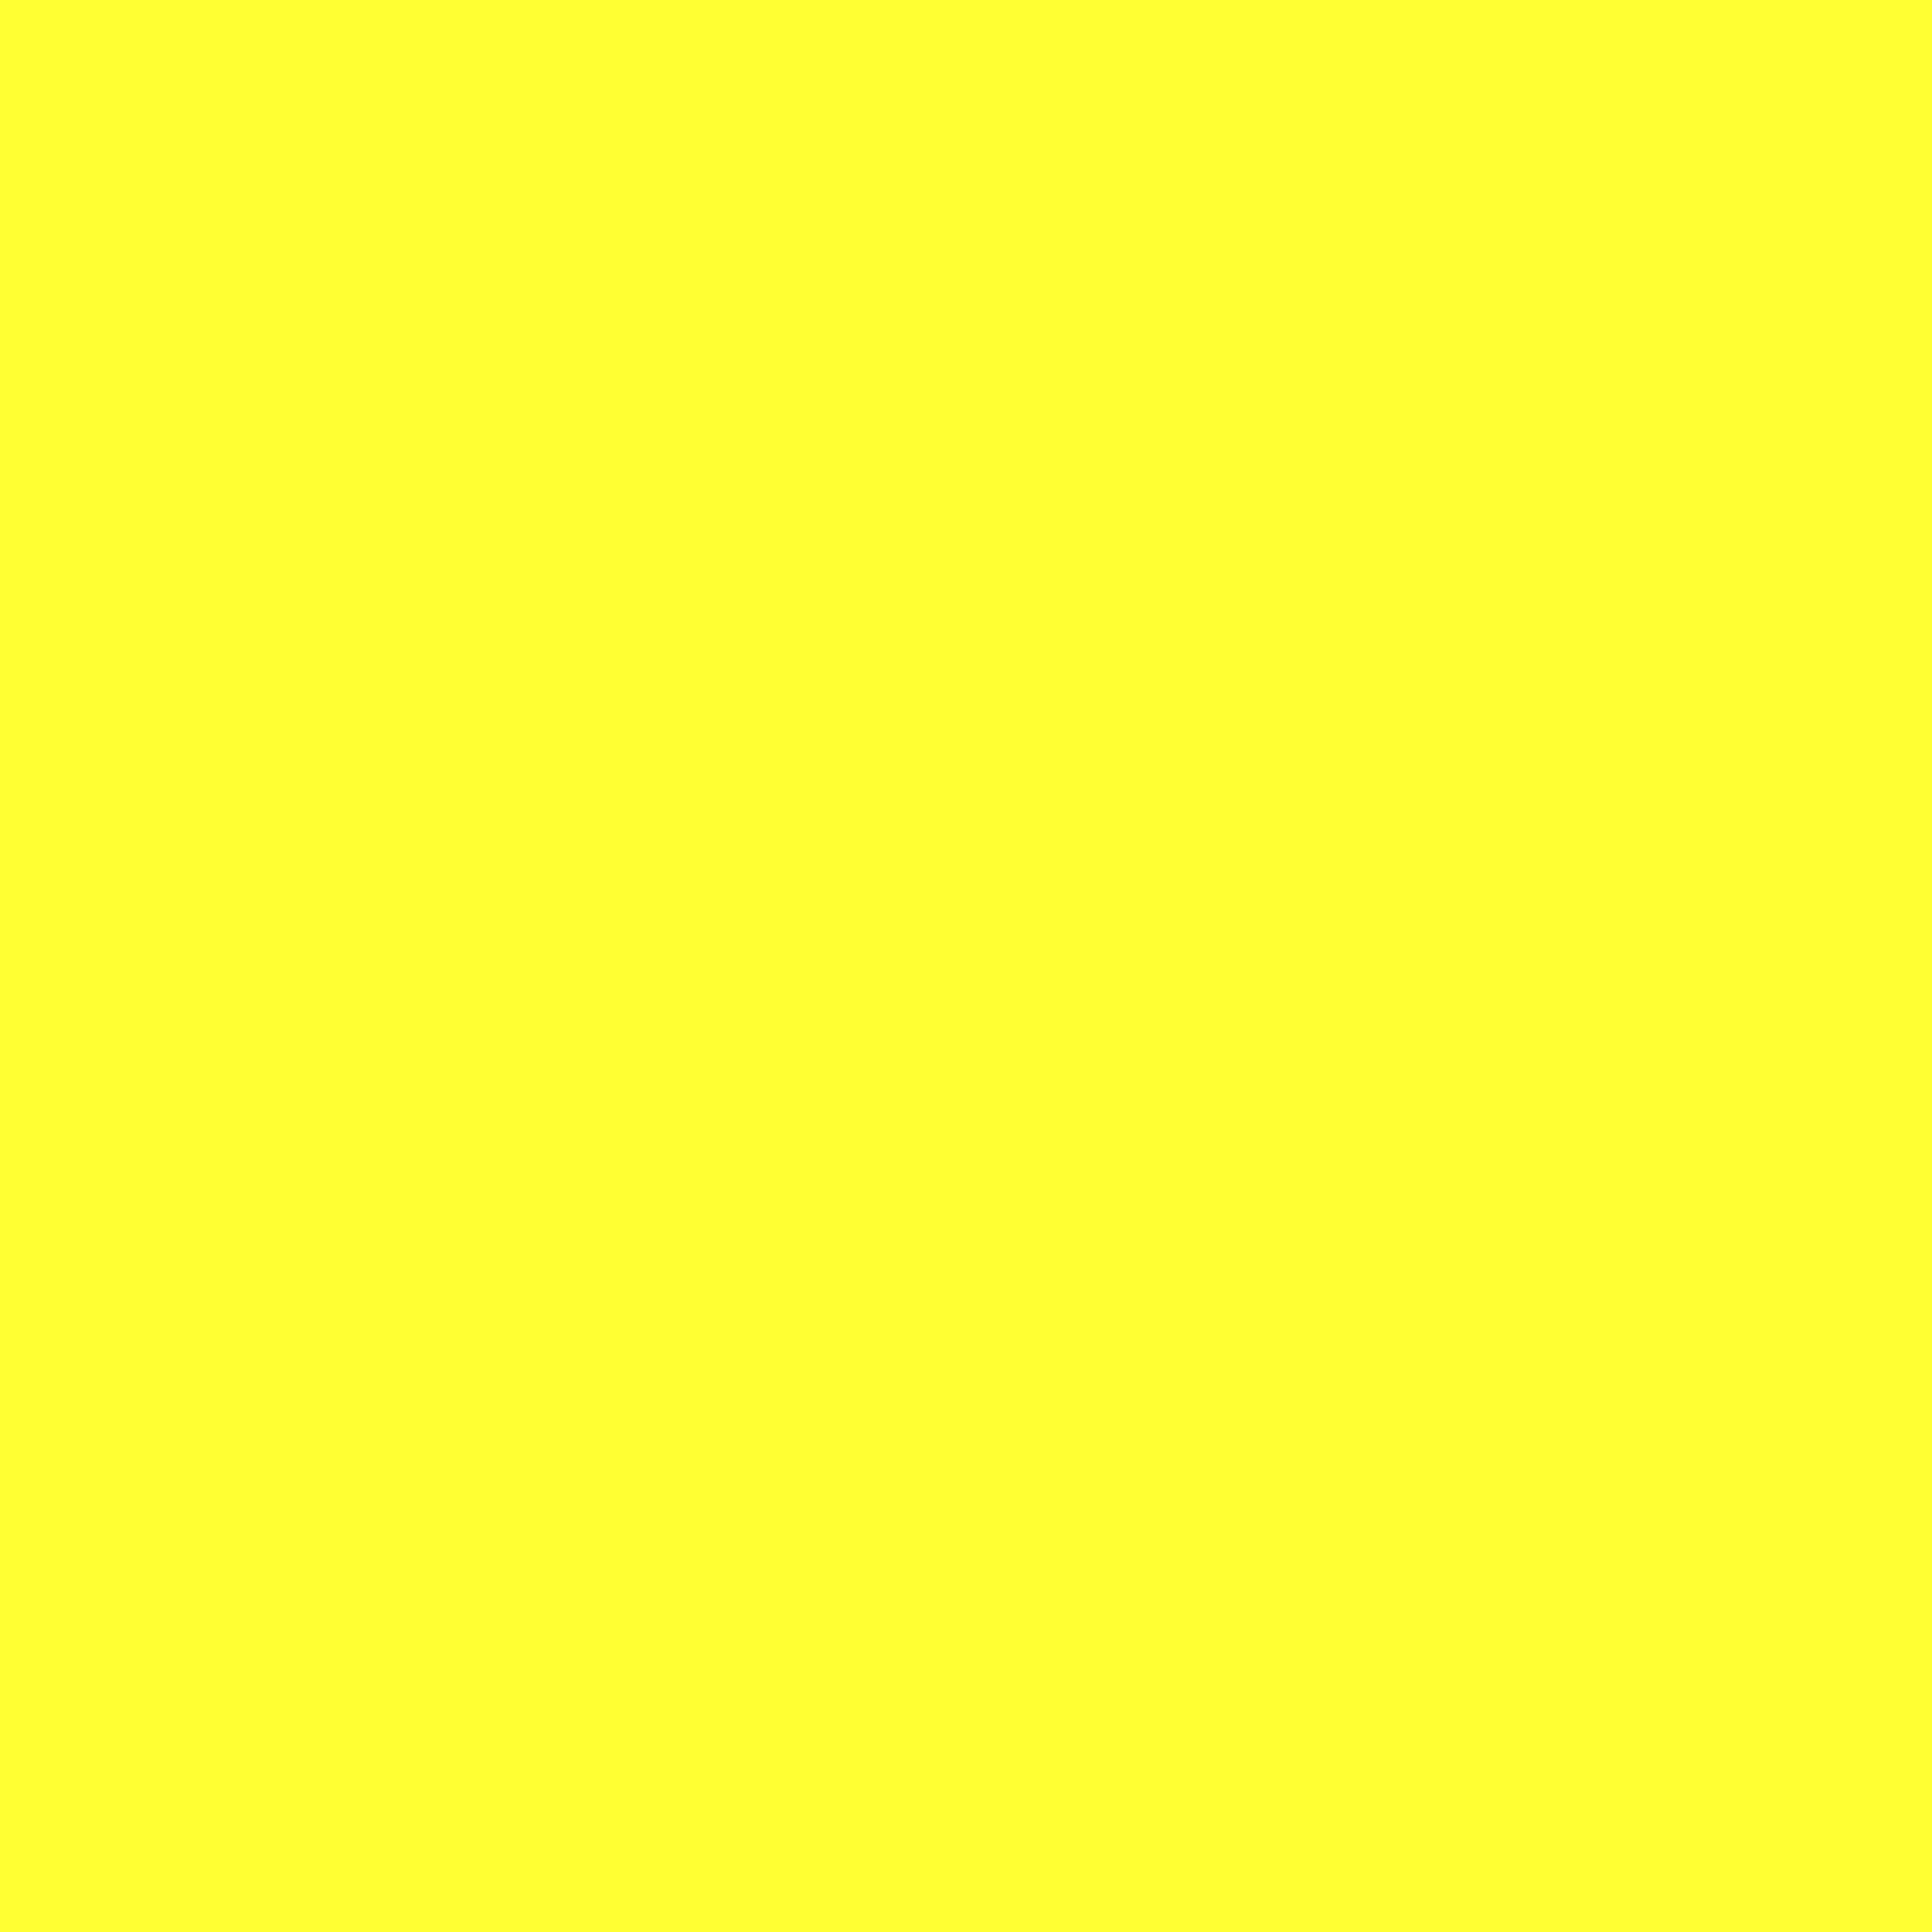 2732x2732 Electric Yellow Solid Color Background